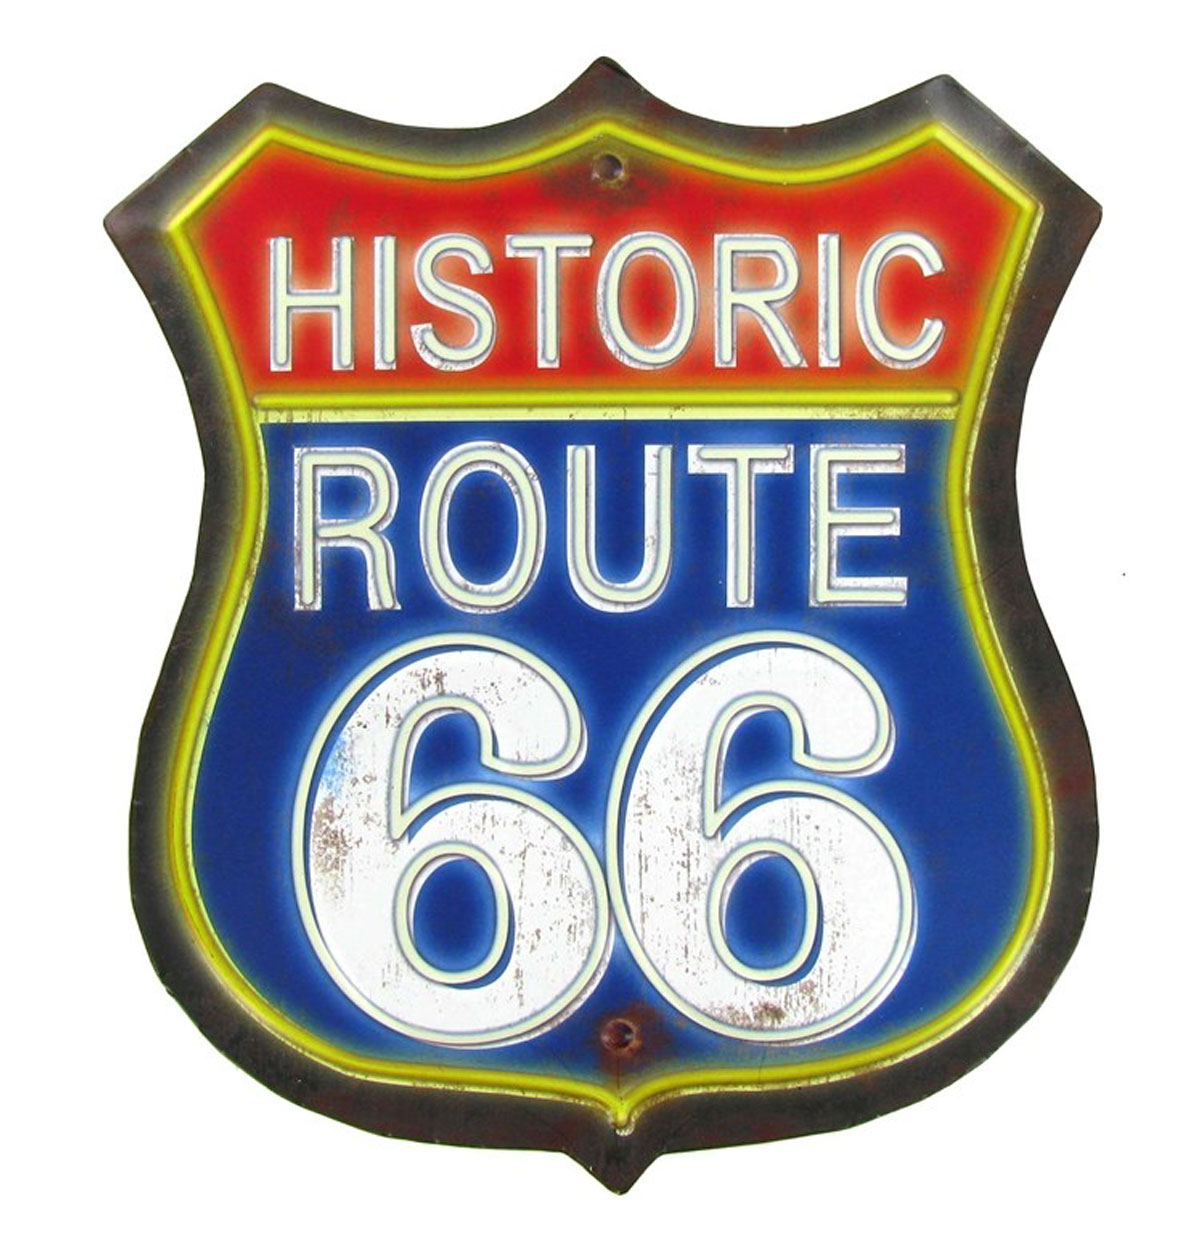 Historic Route 66 Red & Blue Metalen Bord Met Relief